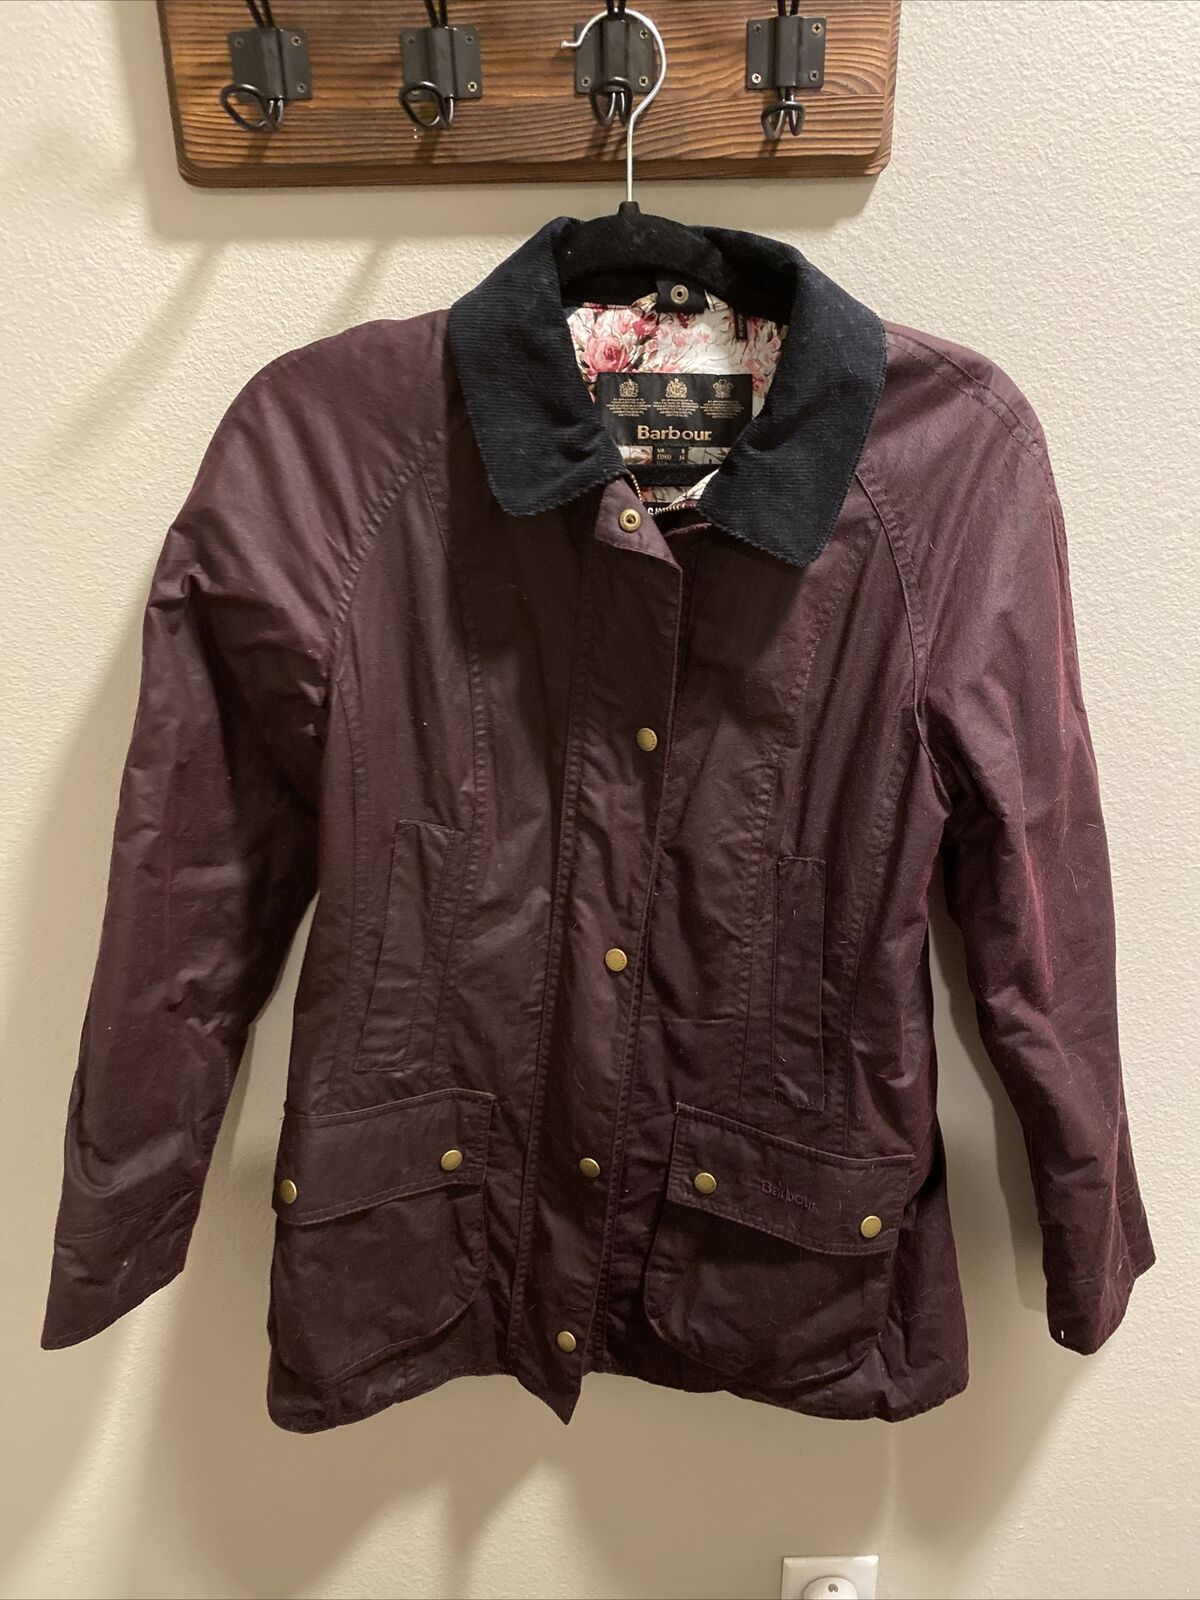 Women's Barbour Wax Jacket - USA Size 4 - Maroon - image 1